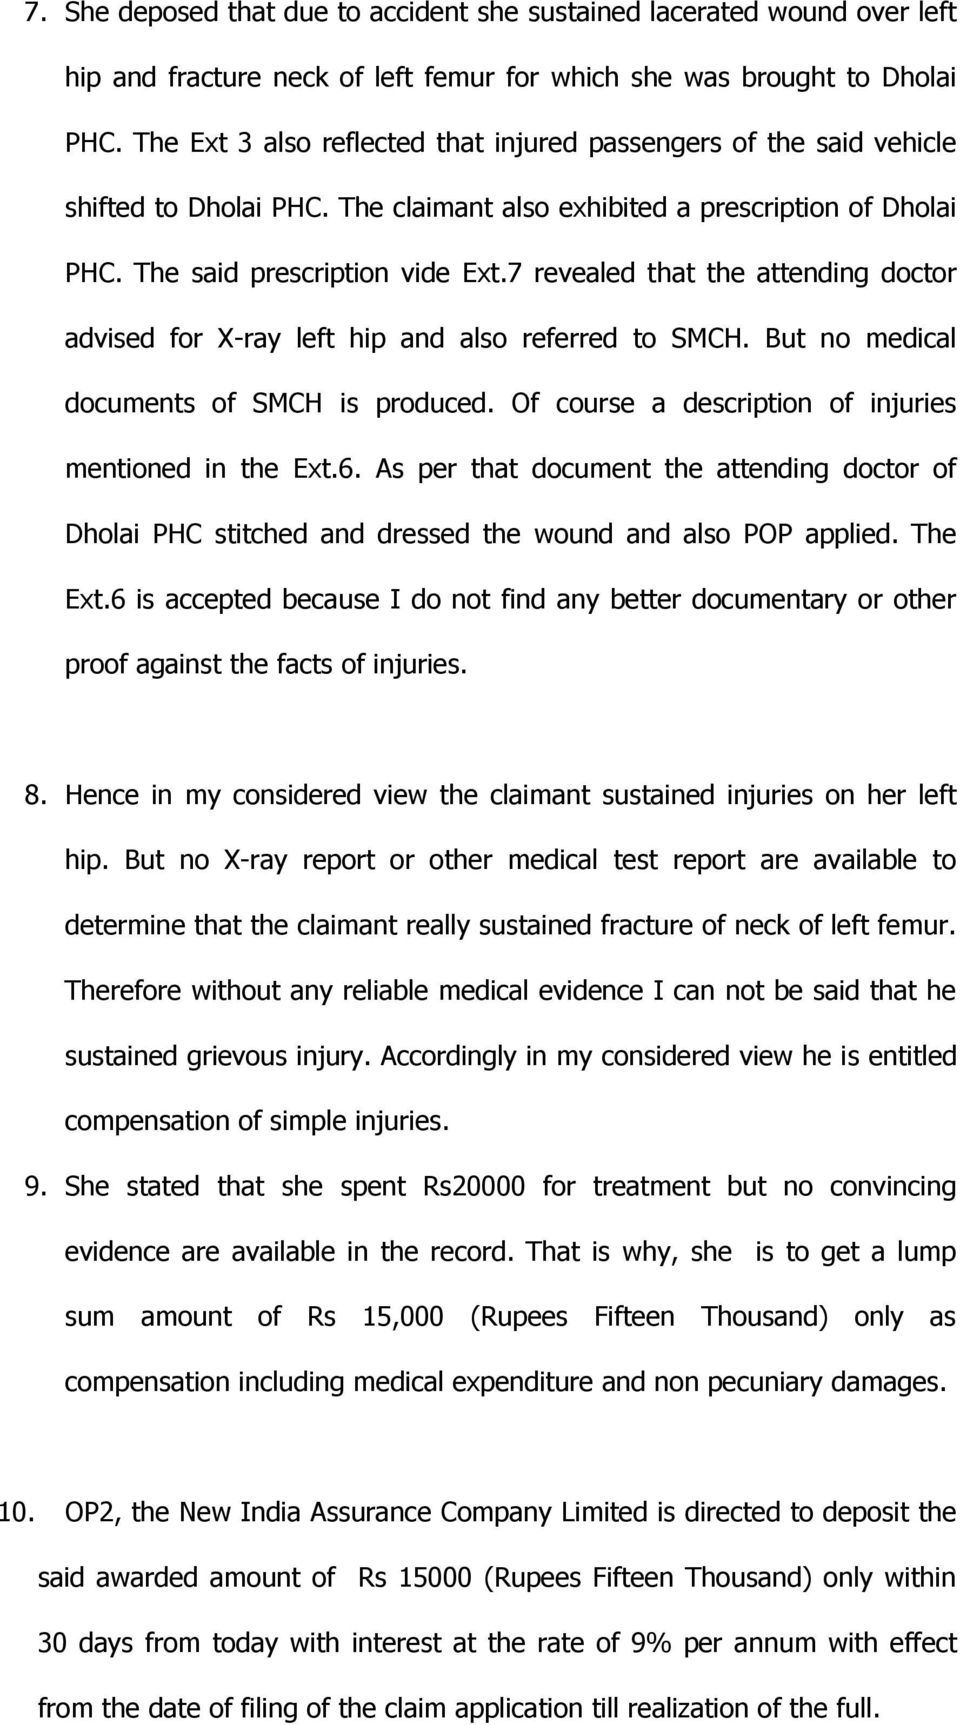 7 revealed that the attending doctor advised for X-ray left hip and also referred to SMCH. But no medical documents of SMCH is produced. Of course a description of injuries mentioned in the Ext.6.